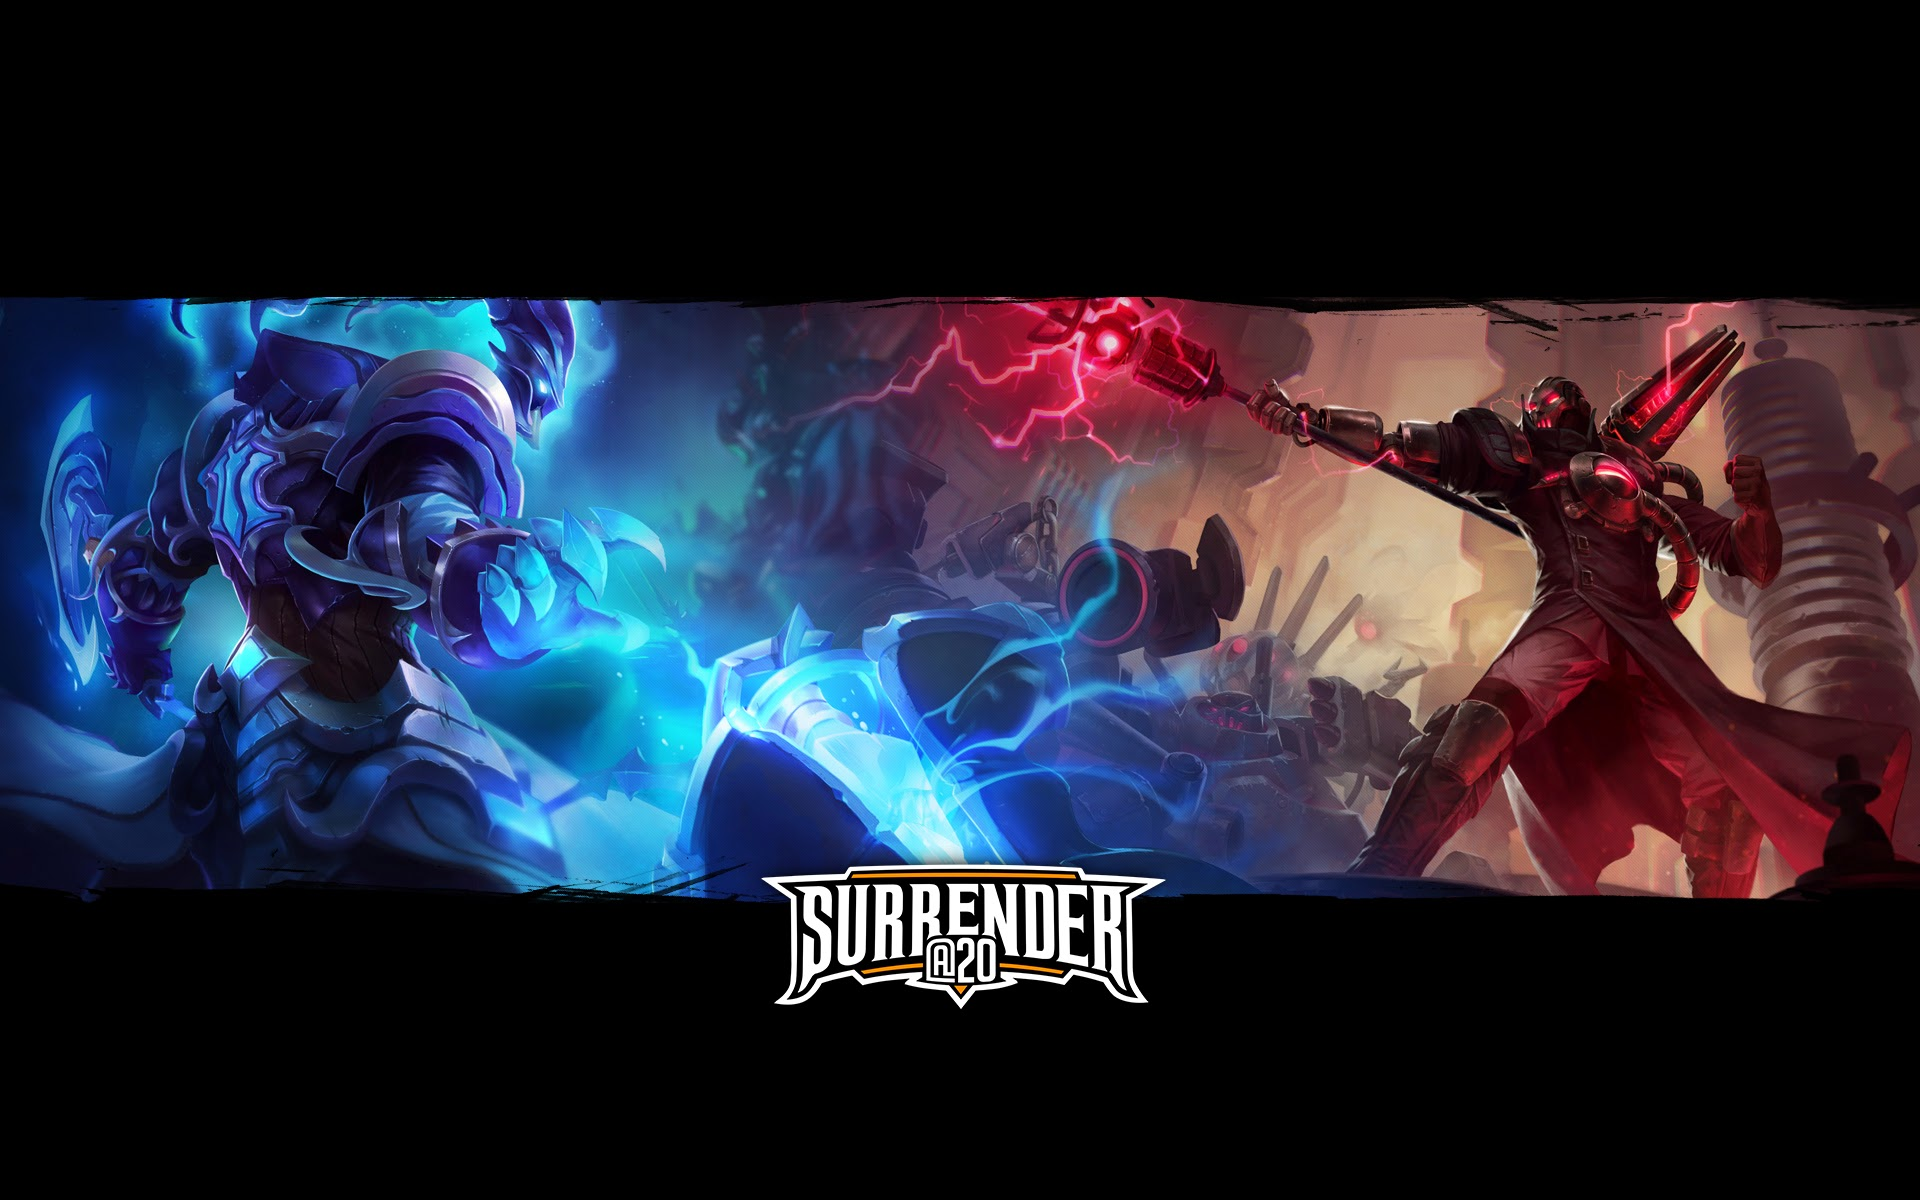 Surrender At 20: Wallpapers